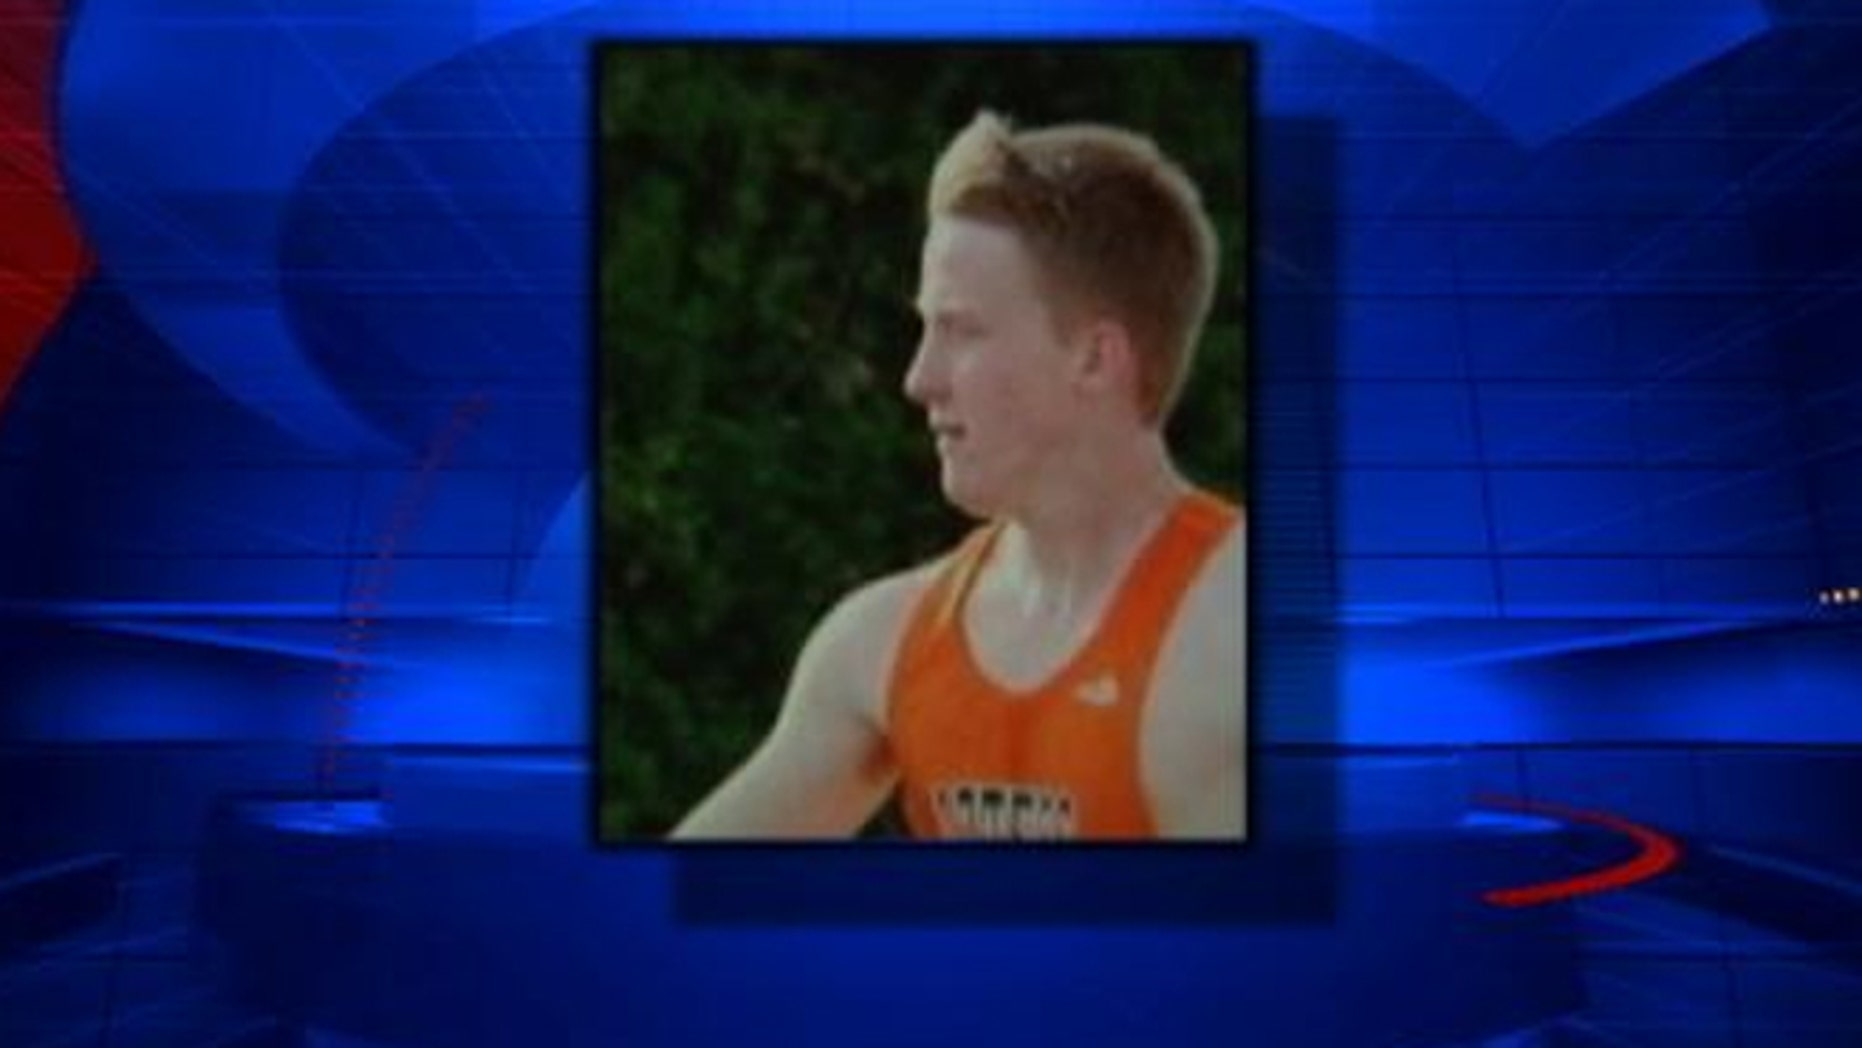 Jake McGrady was rushed to Flagstaff Medical Center with multiple internal and external injuries.